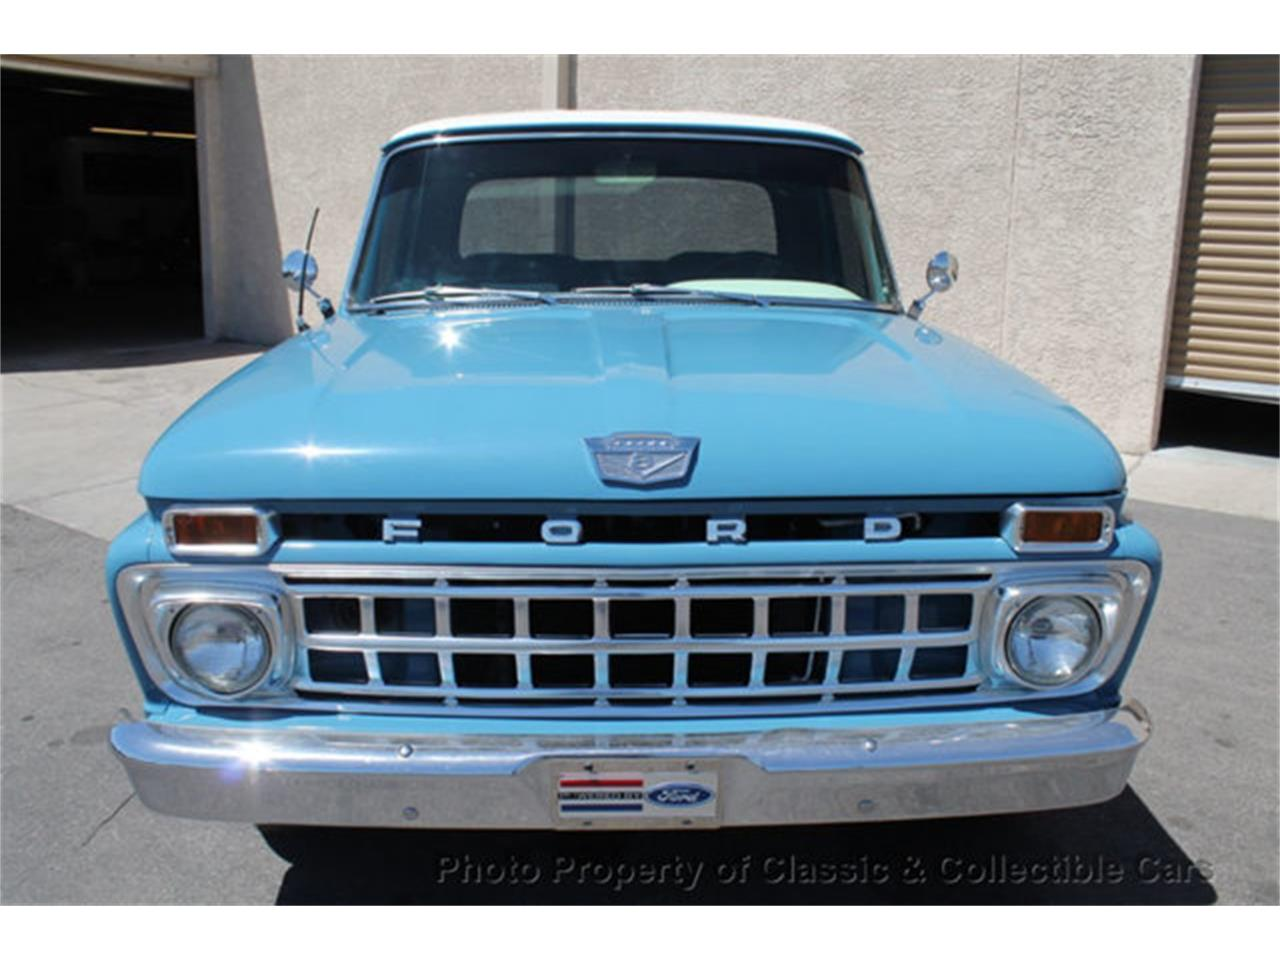 For Sale: 1965 Ford F100 in Las Vegas, Nevada